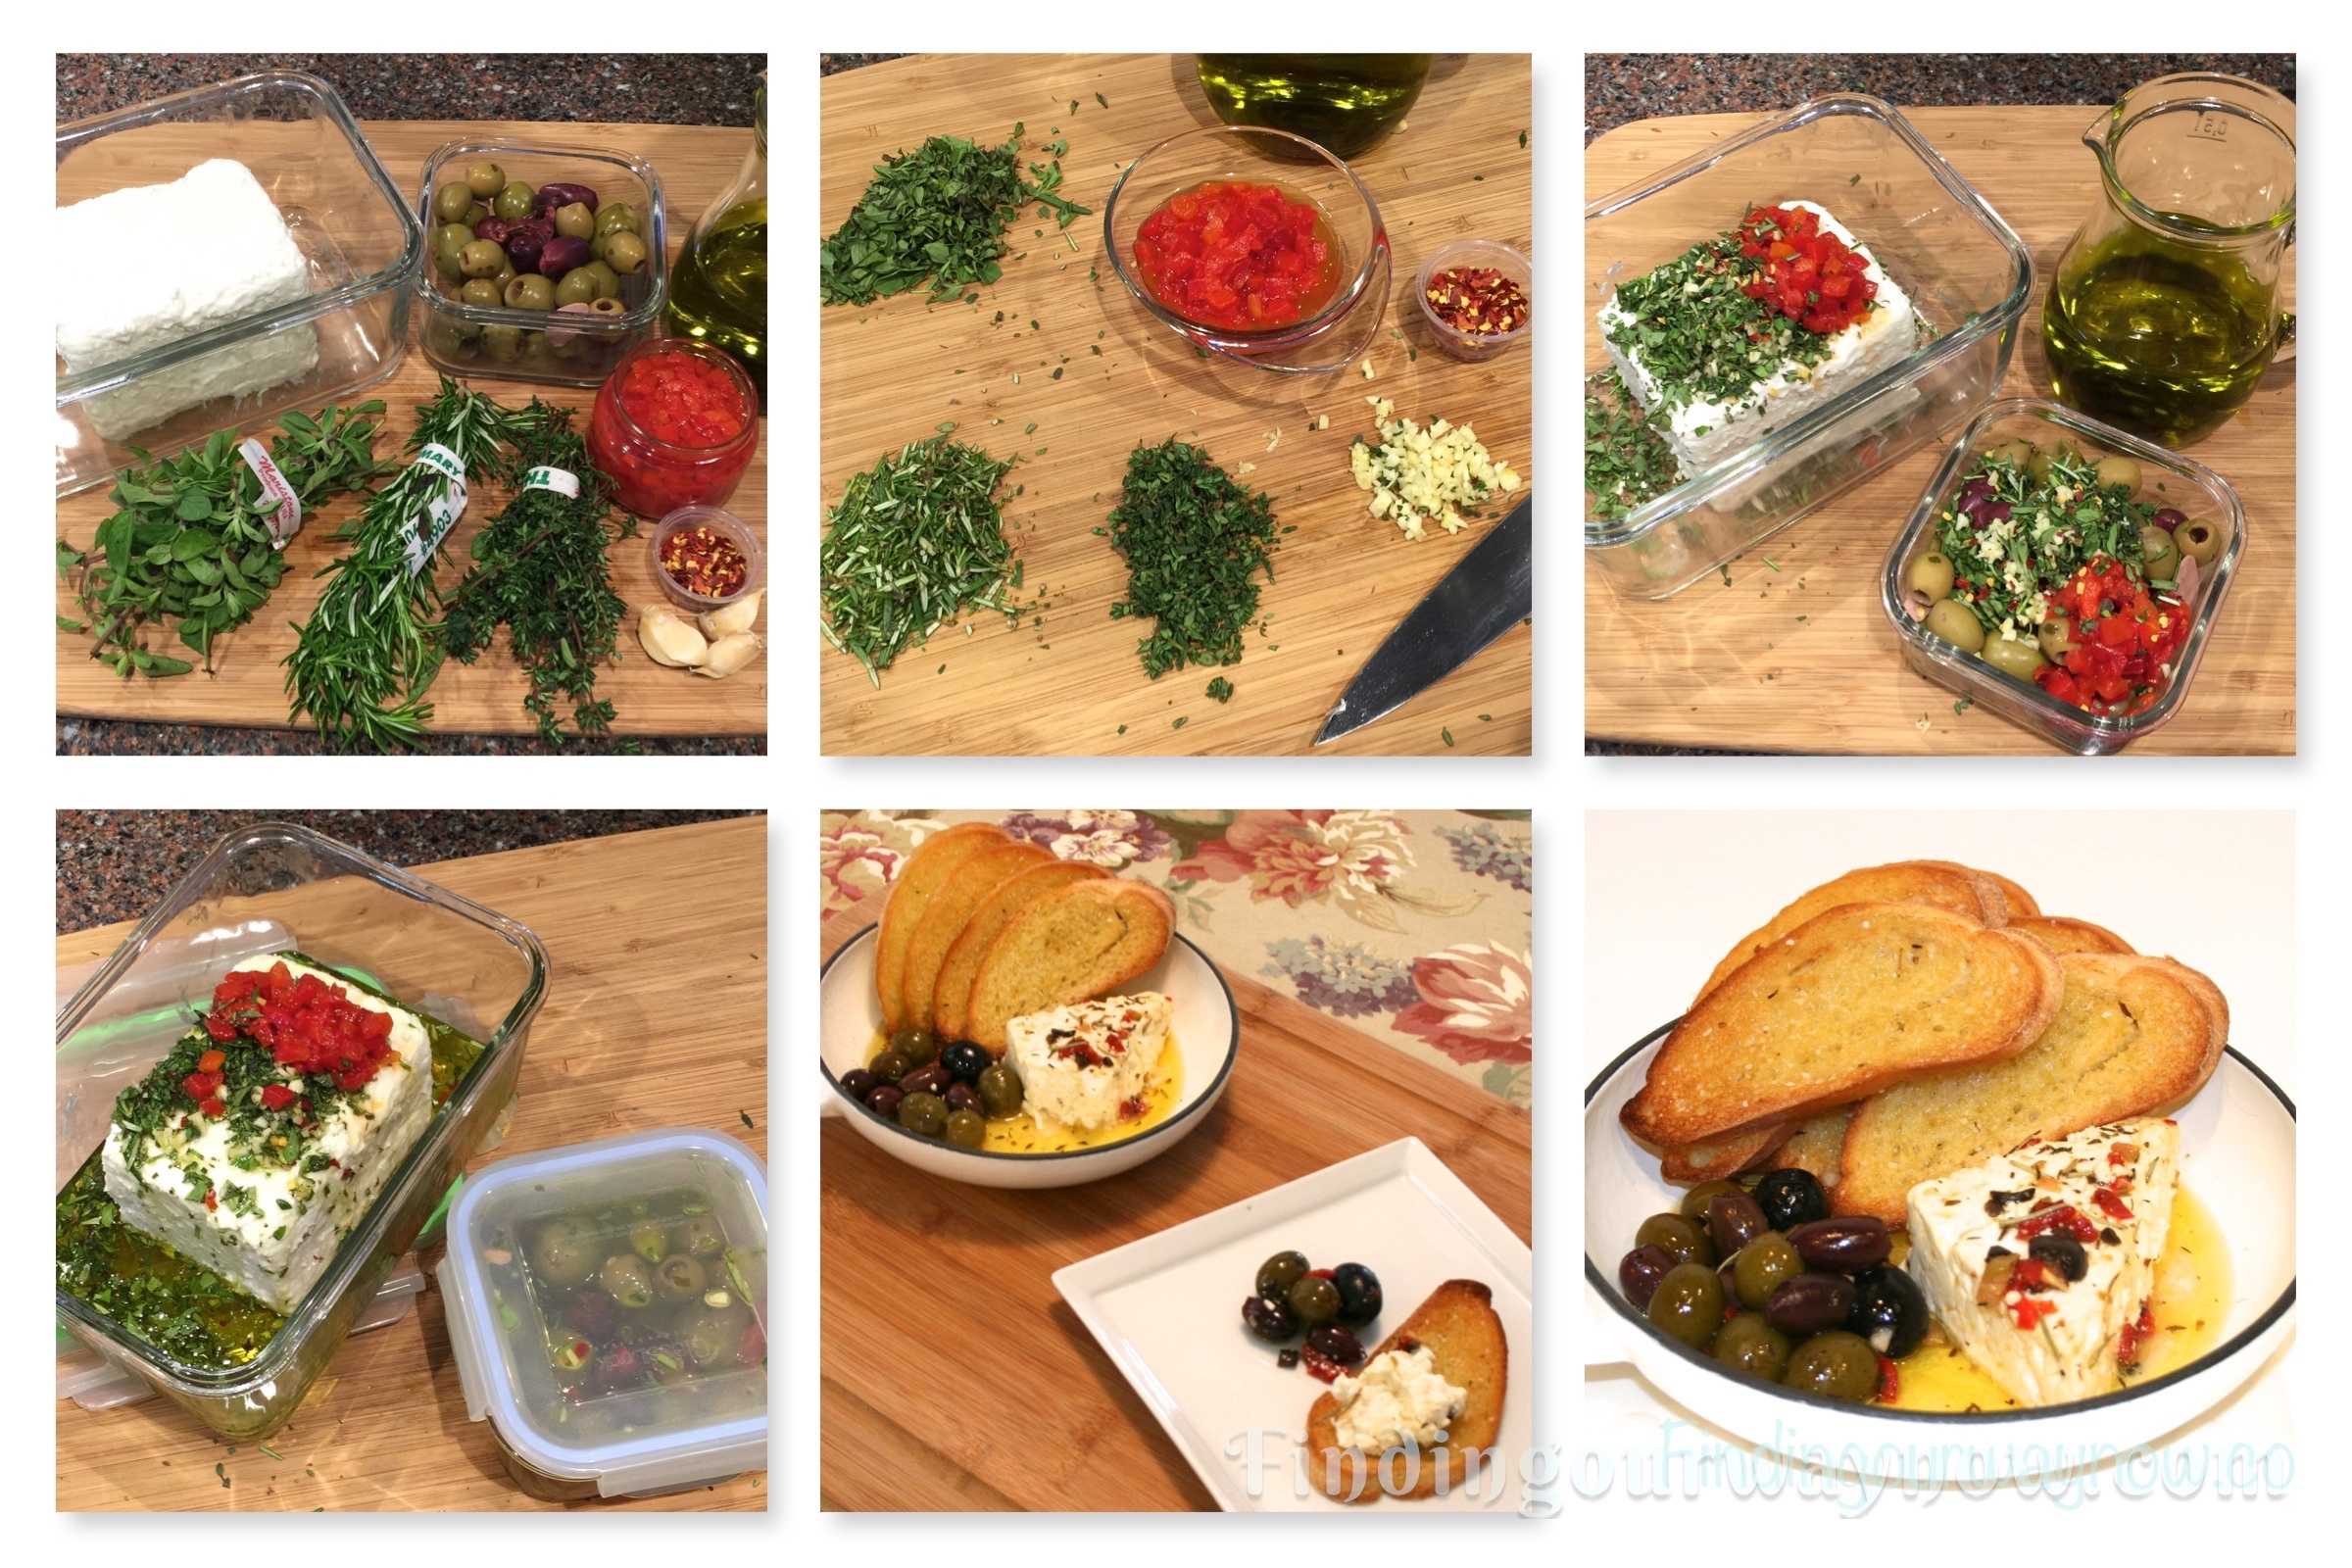 Warm Marinated Feta Cheese with Olives, findingourwaynow.com